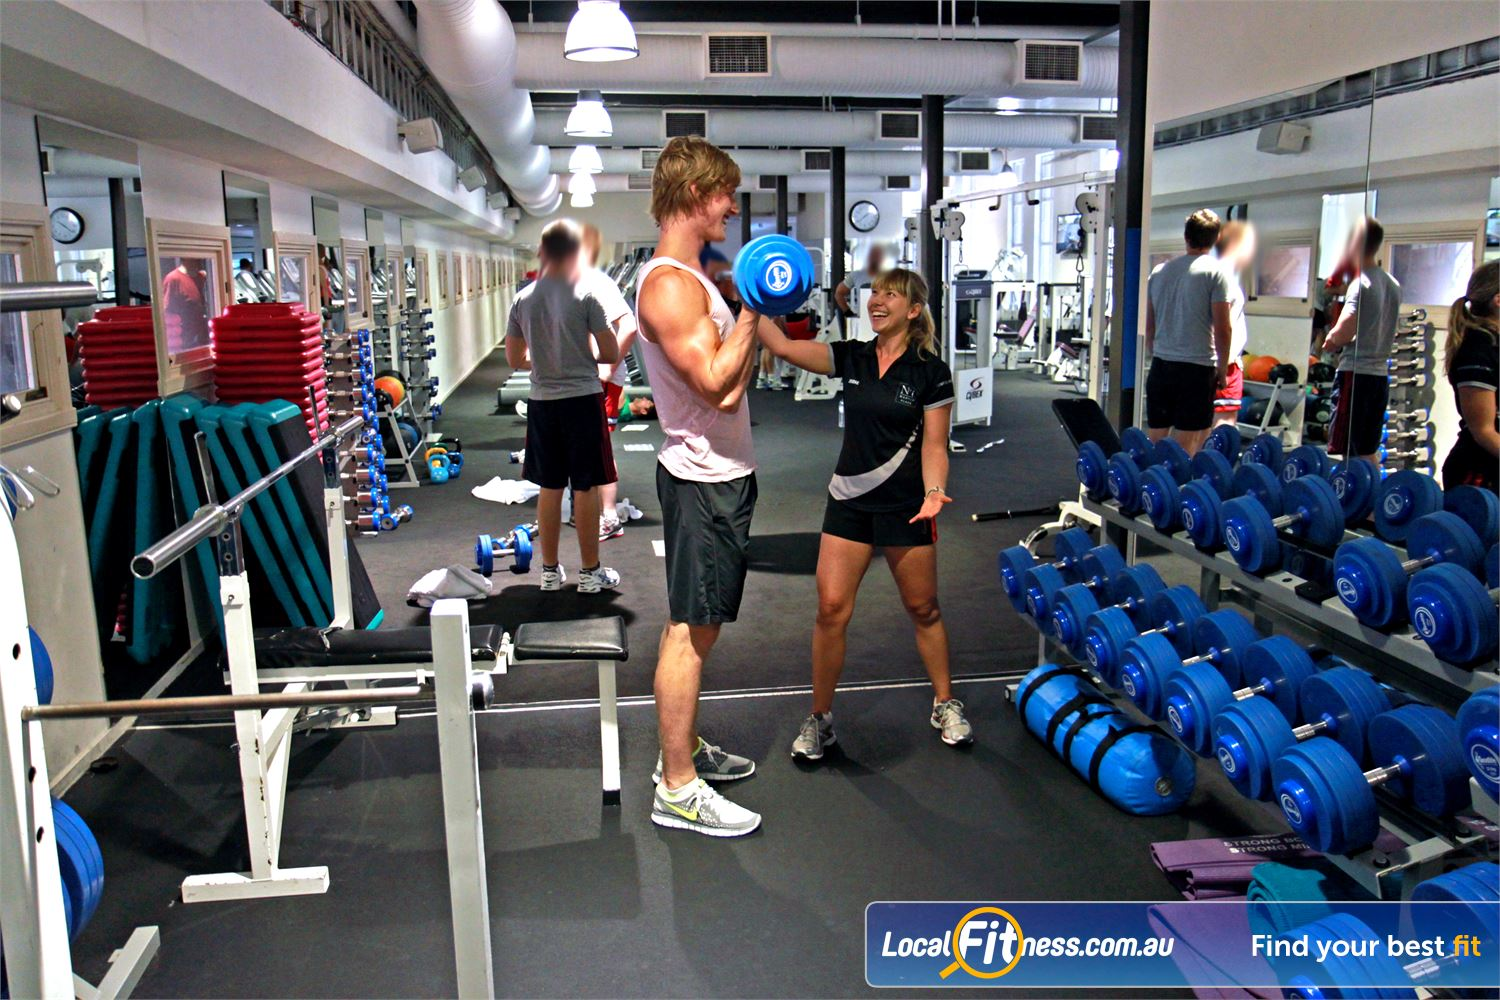 Goodlife Health Clubs Martin Place Sydney Our Sydney Martin Place gym includes a comprehensive range of dumbbells and barbells.